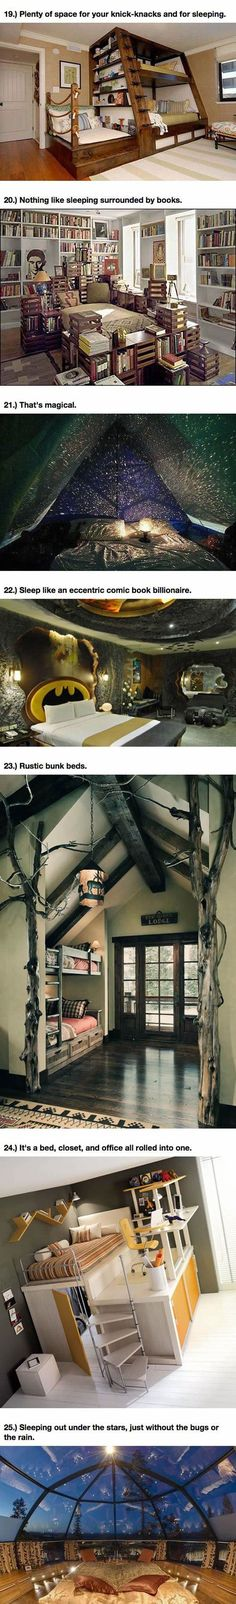 Best bed designs ever